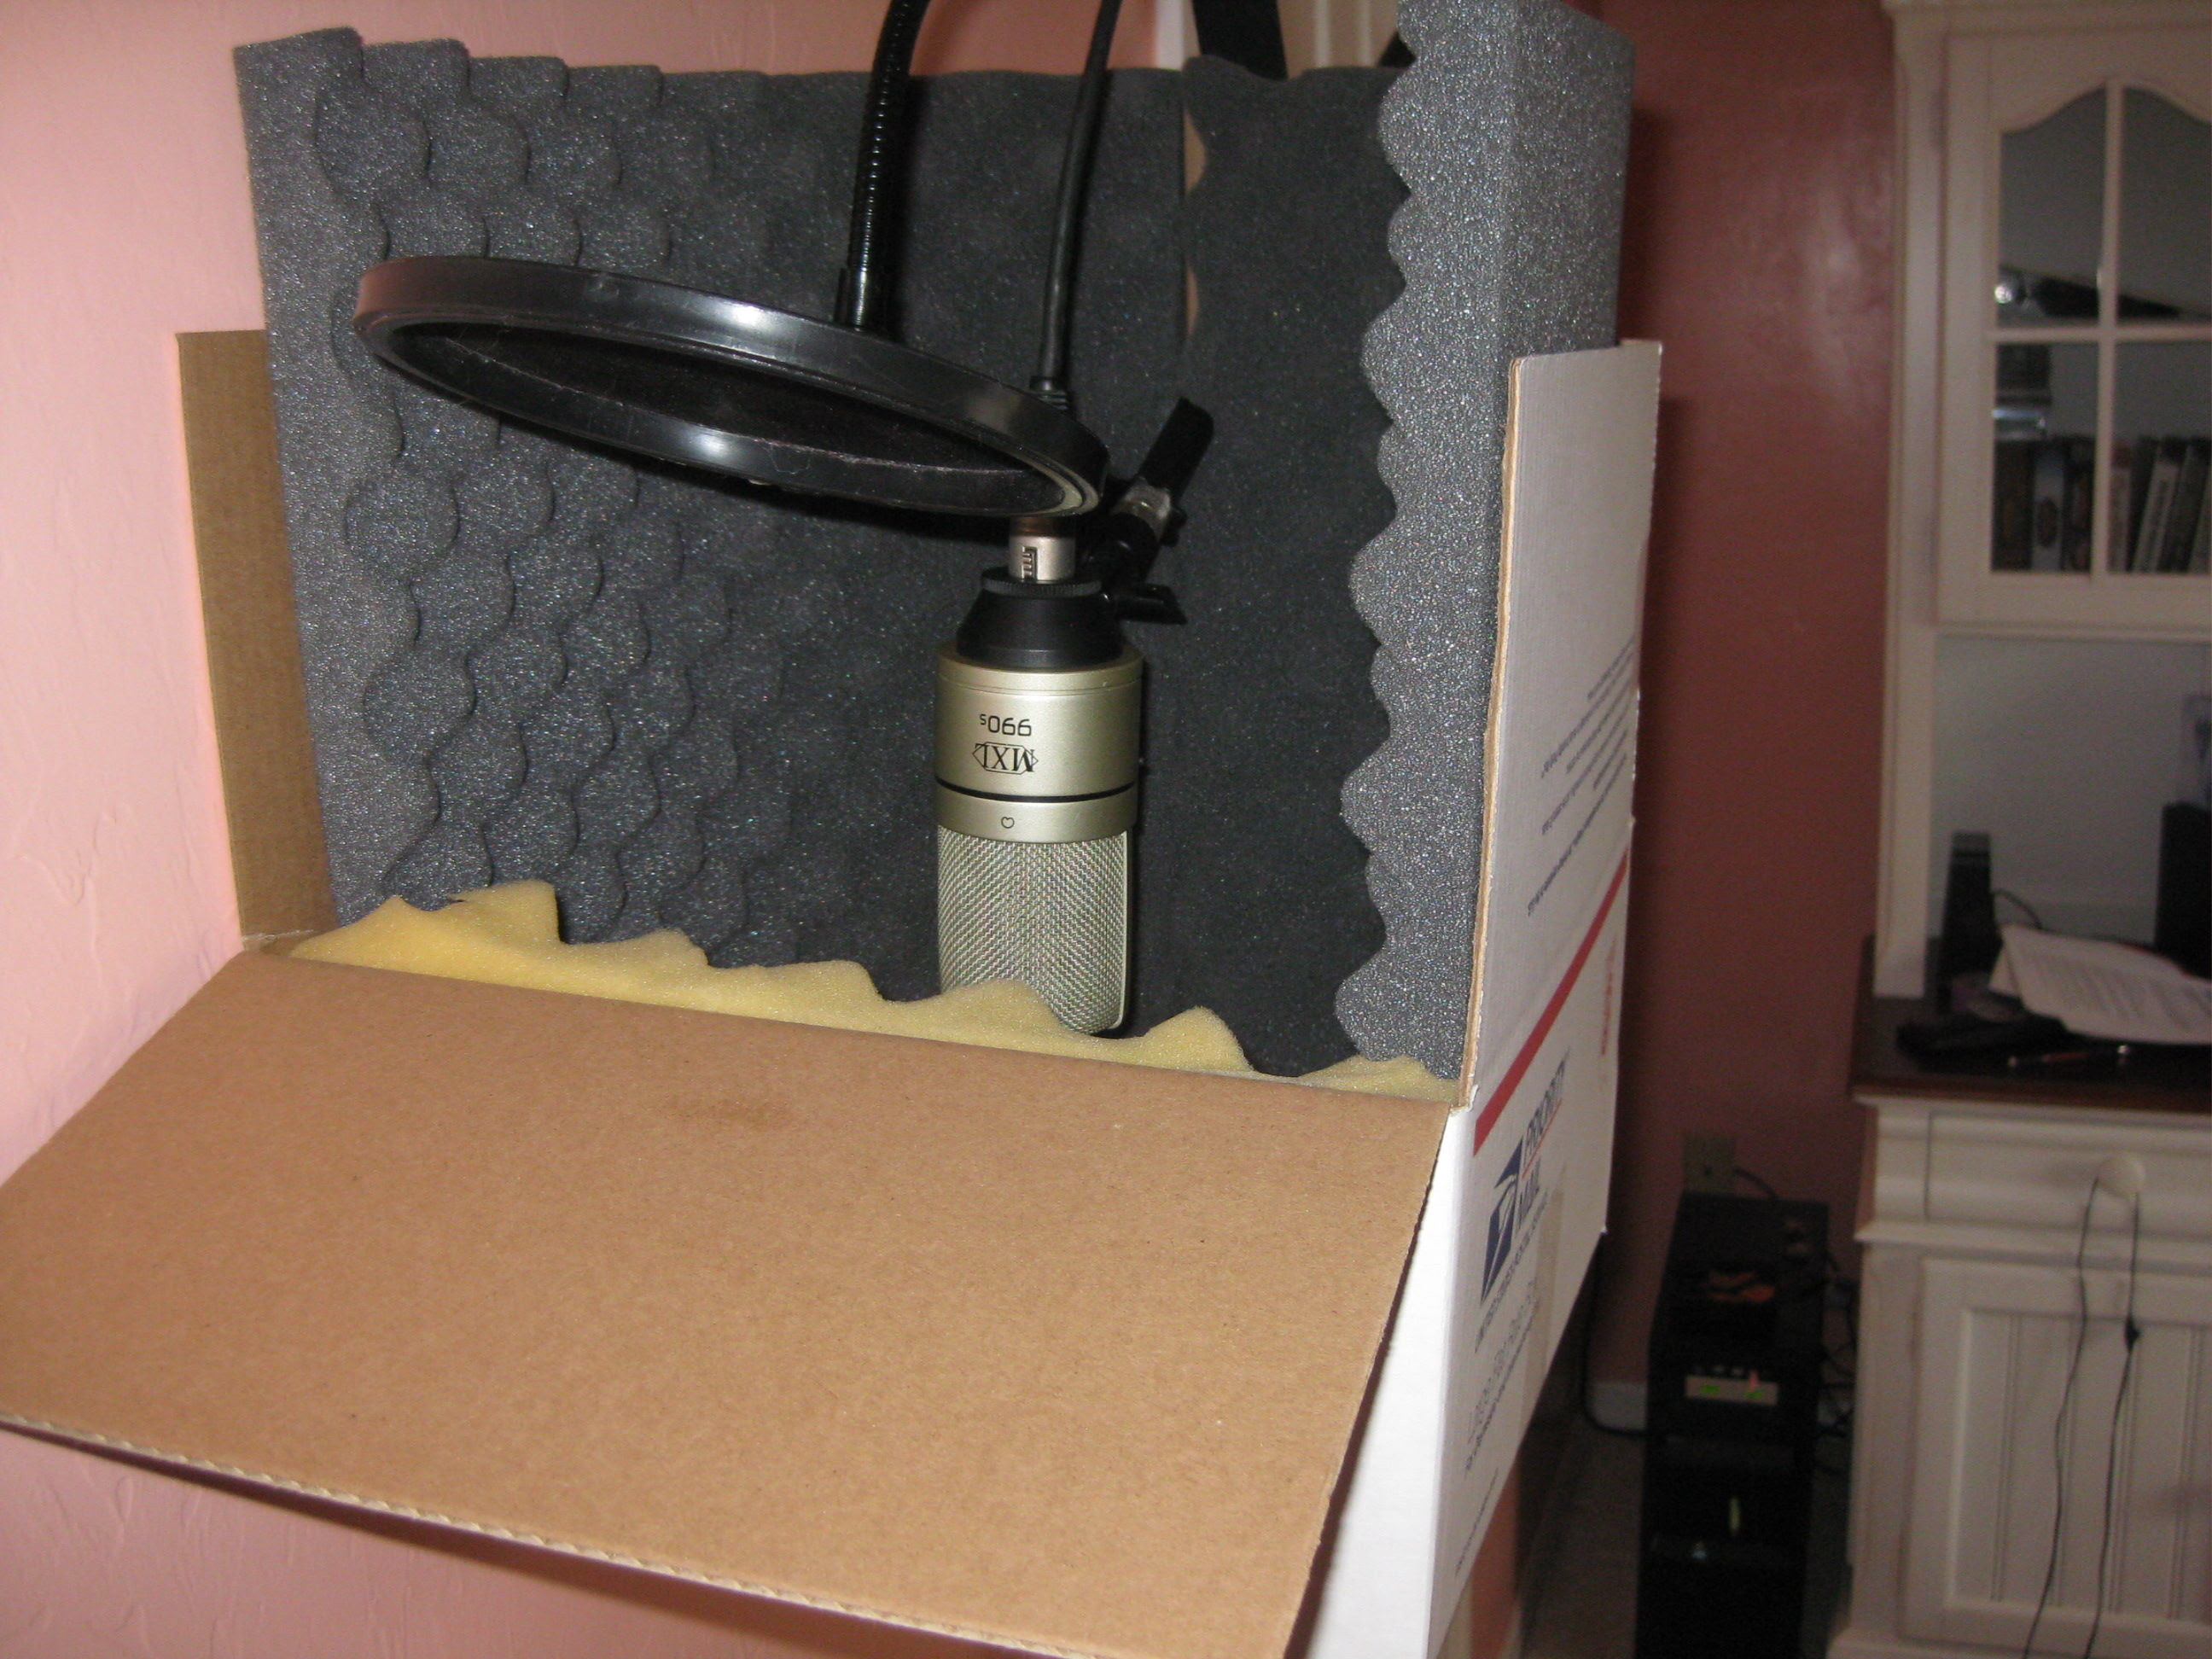 DIY Acoustic Foam Avid Pro Audio munity